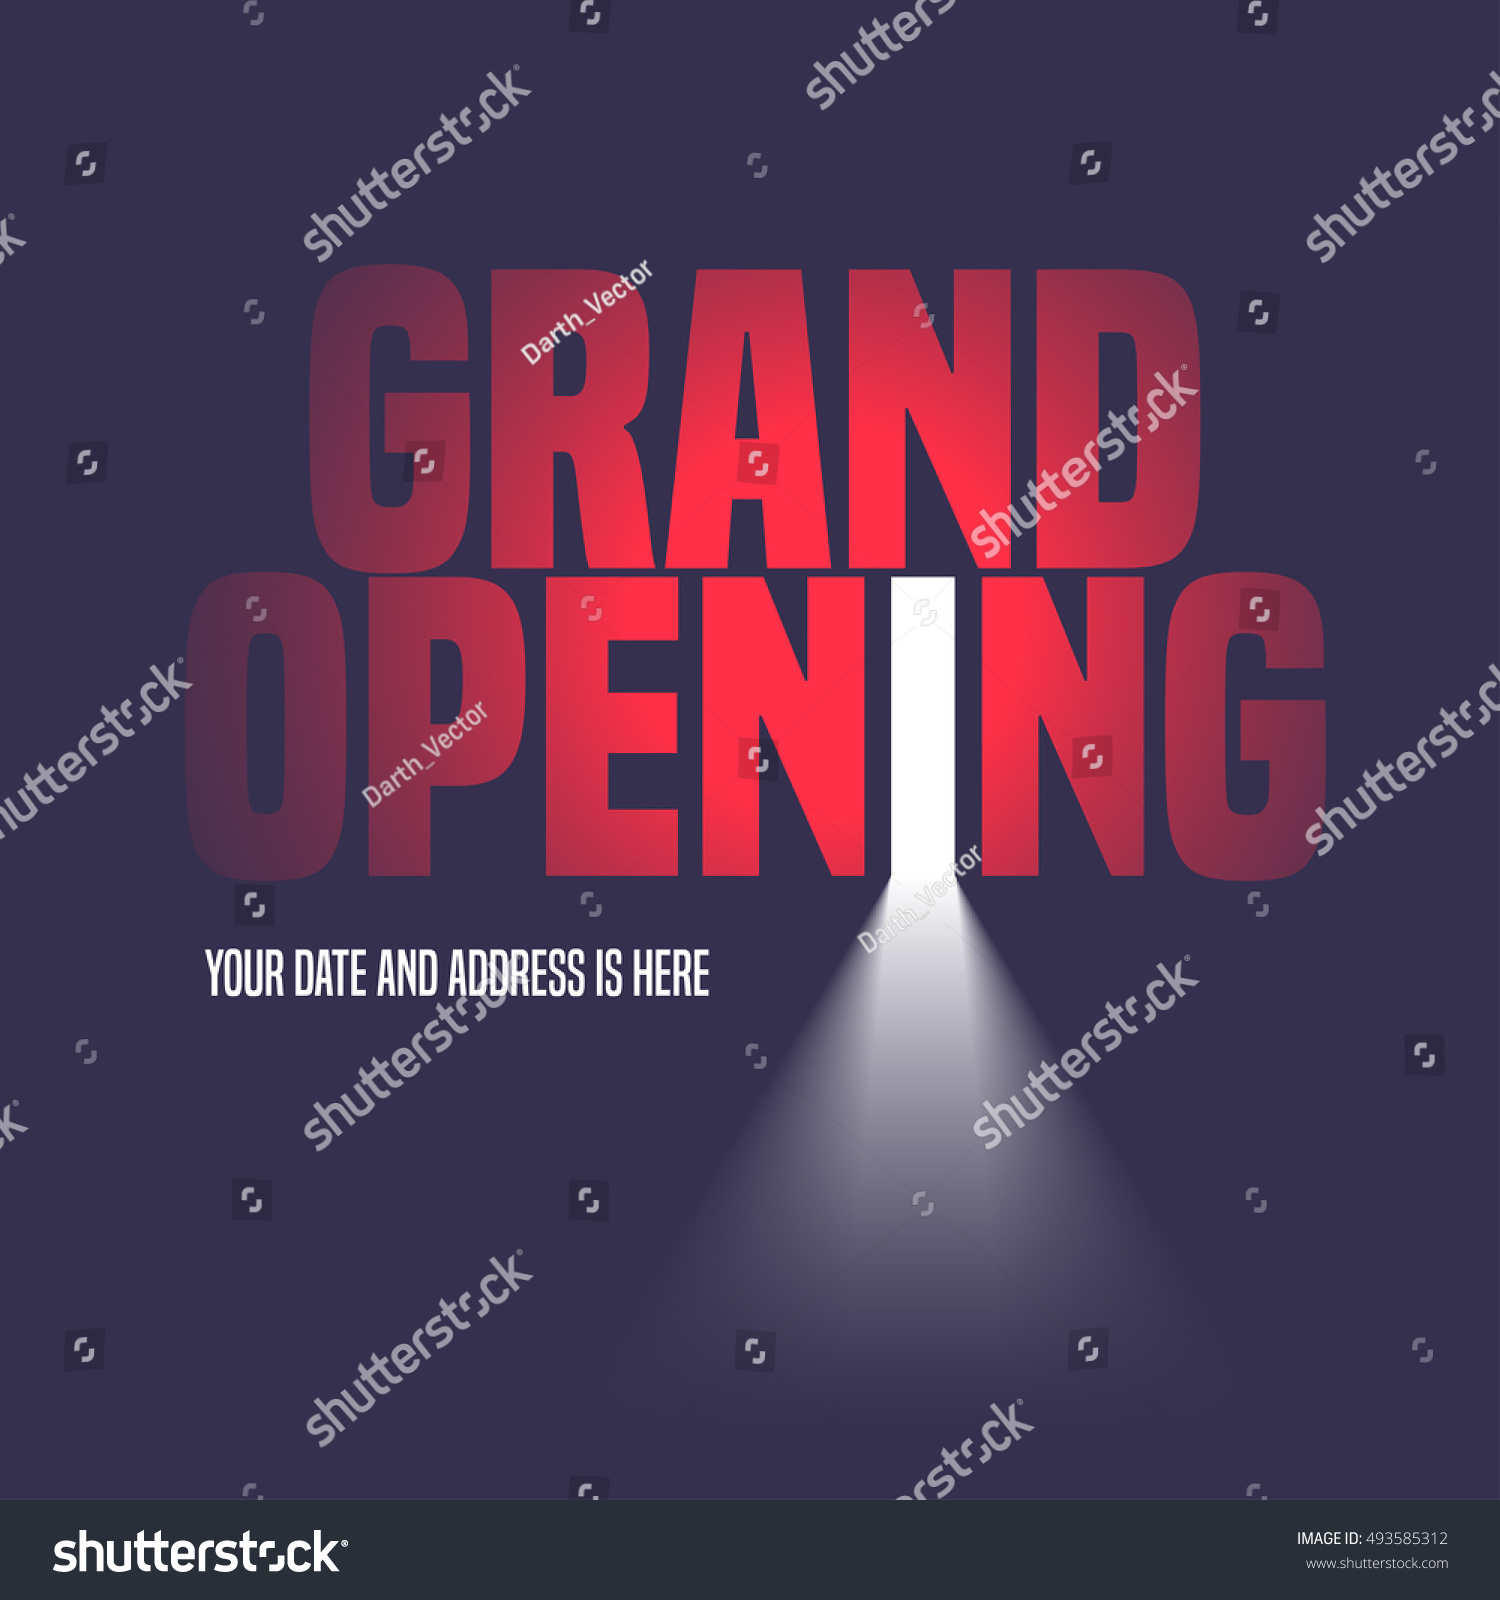 grand opening vector illustration background open stock